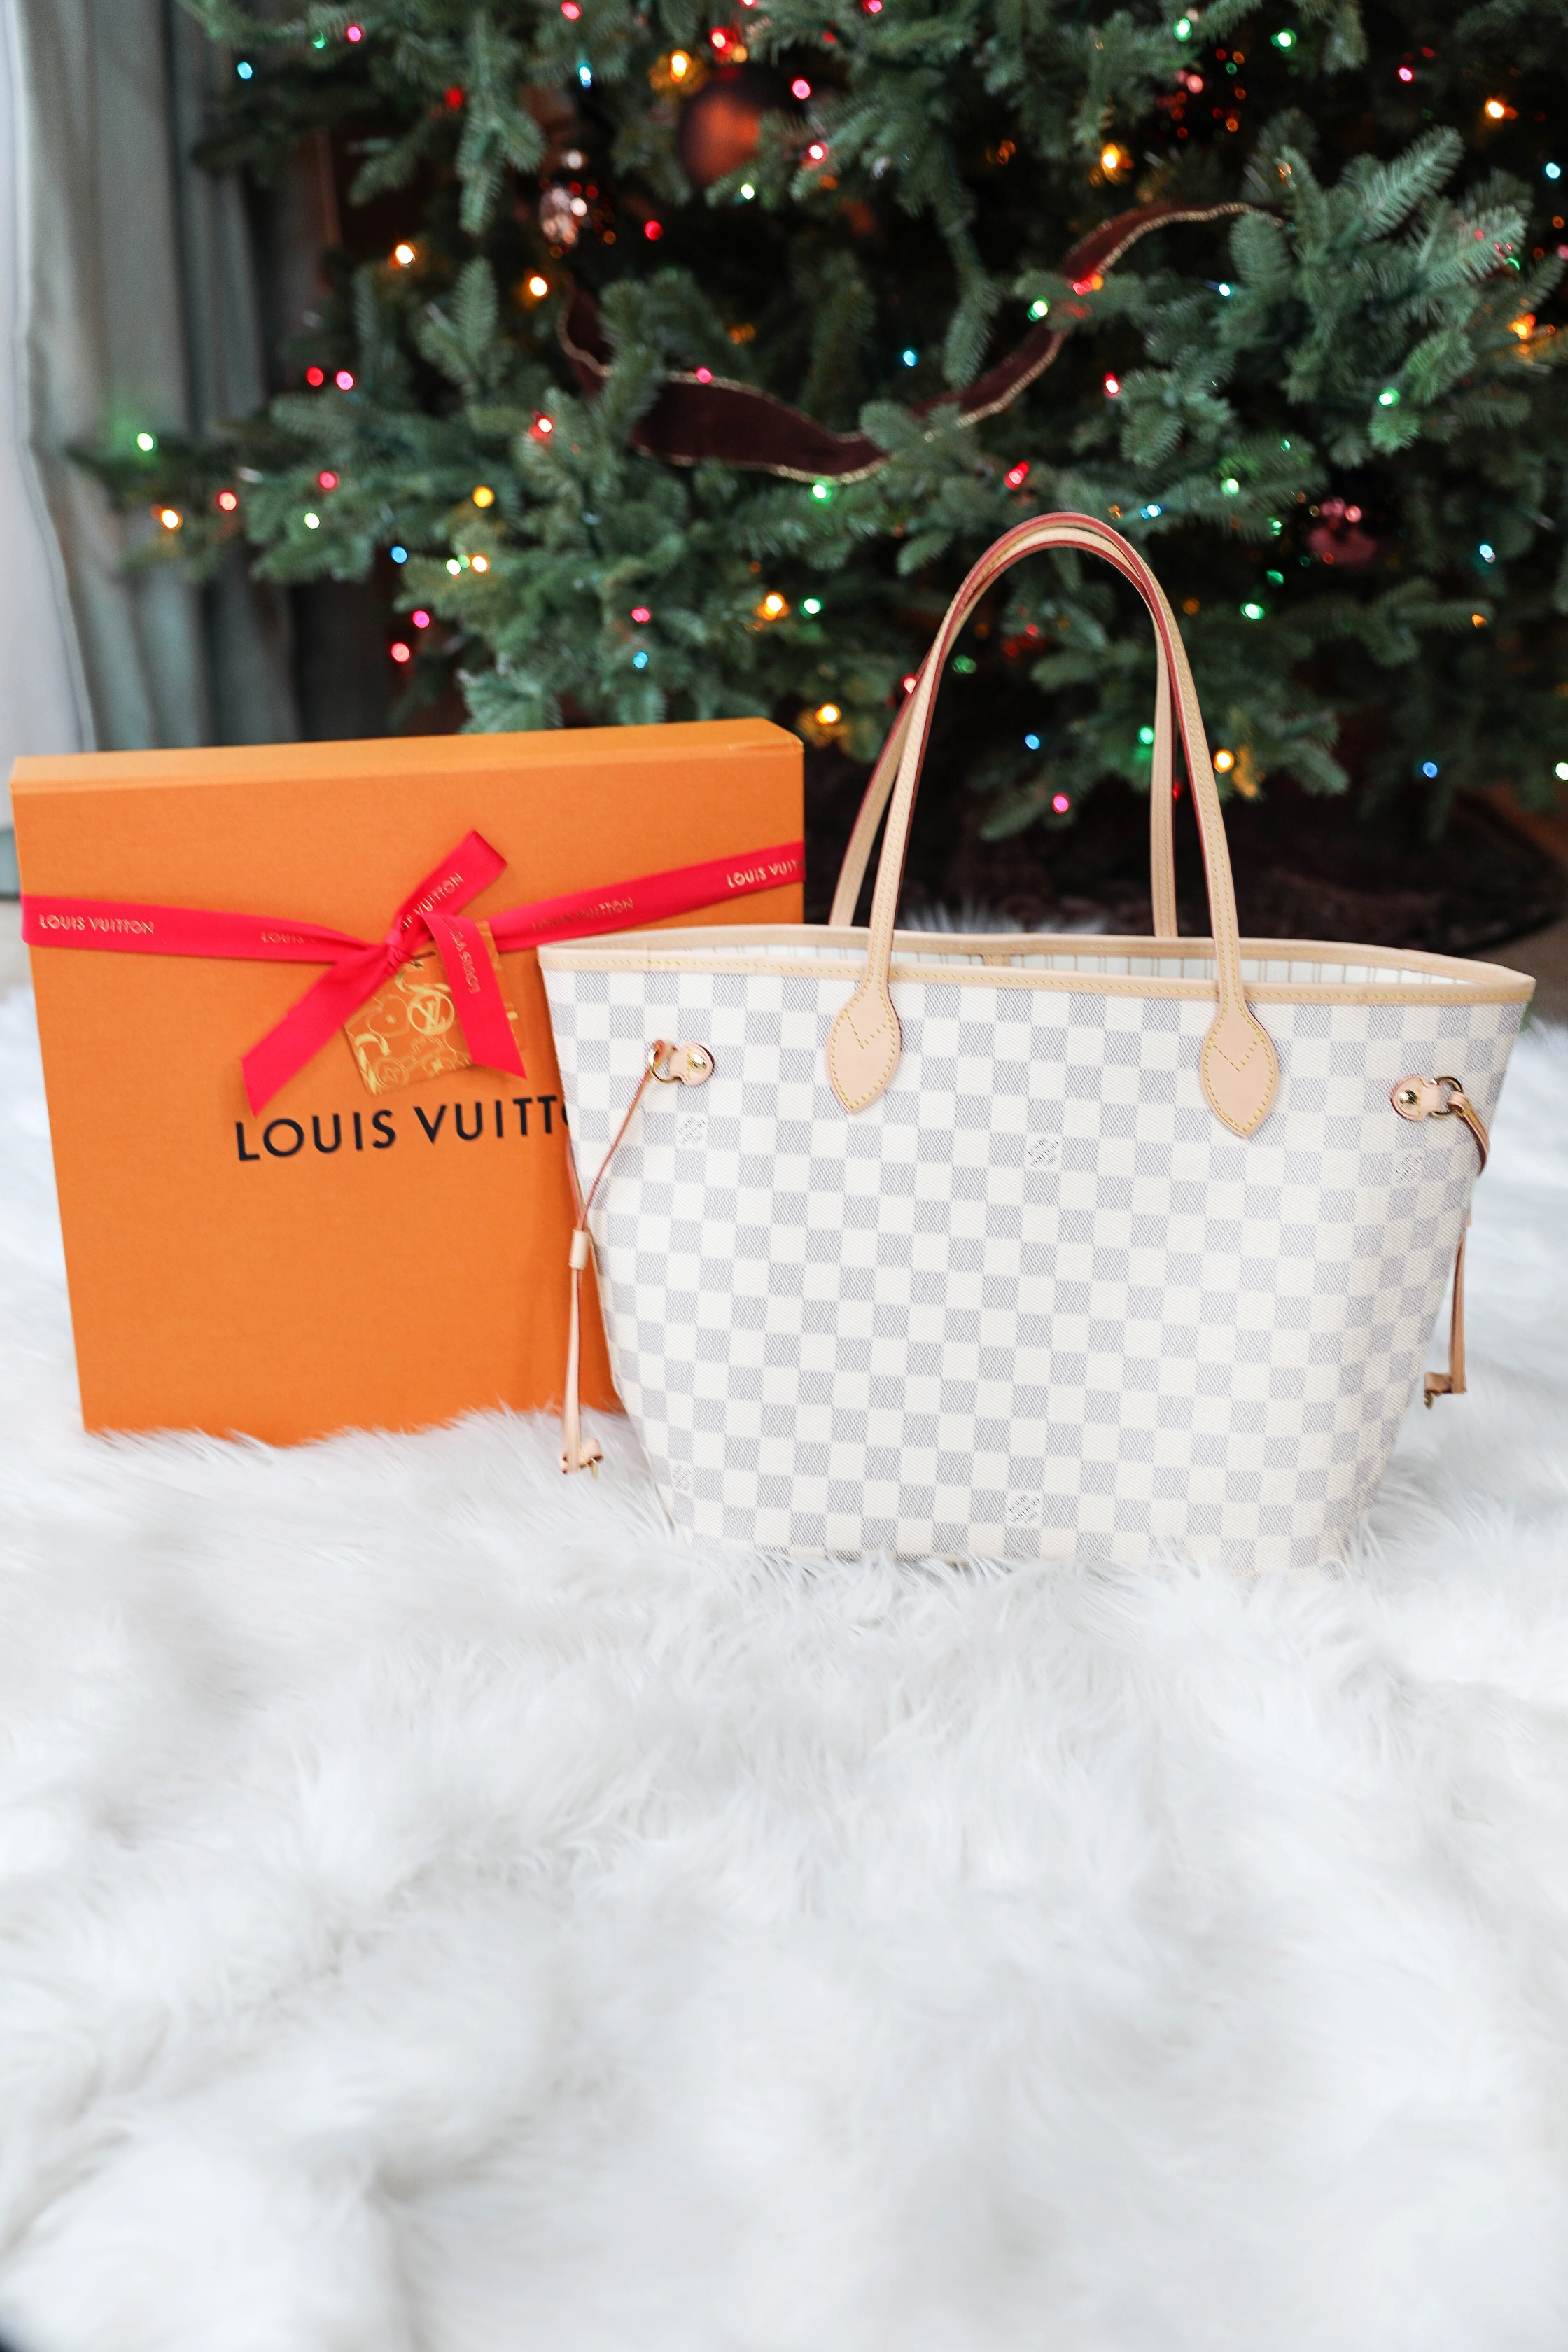 What I got for Christmas 2018! HUGE haul including a Louis Vuitton Neverfull MM, Apple Watch, Nespresso, and more! Details on fashion blog daily dose of charm by lauren lindmark